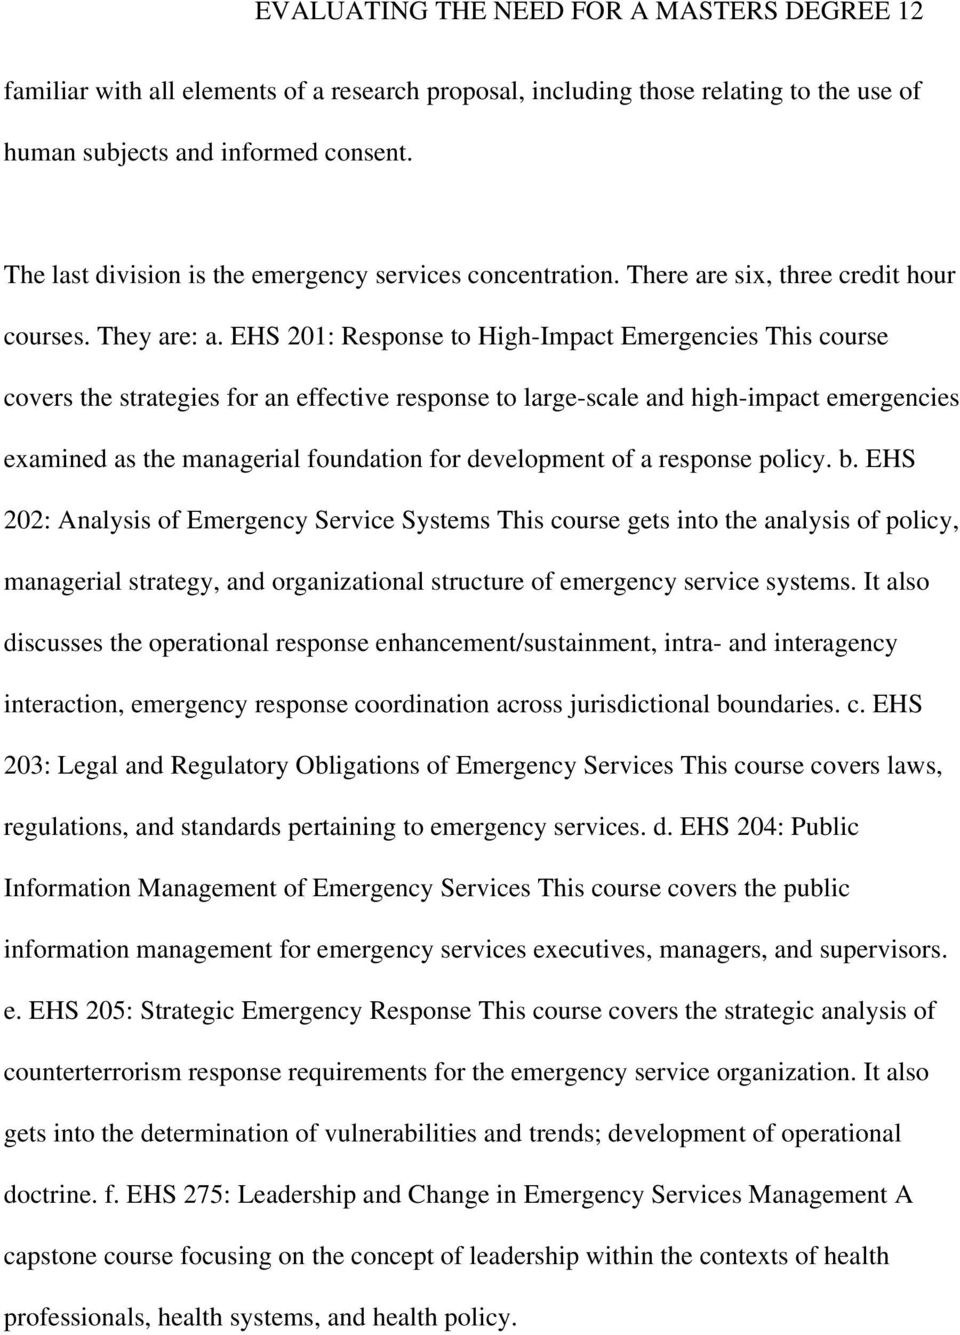 EHS 201: Response to High-Impact Emergencies This course covers the strategies for an effective response to large-scale and high-impact emergencies examined as the managerial foundation for